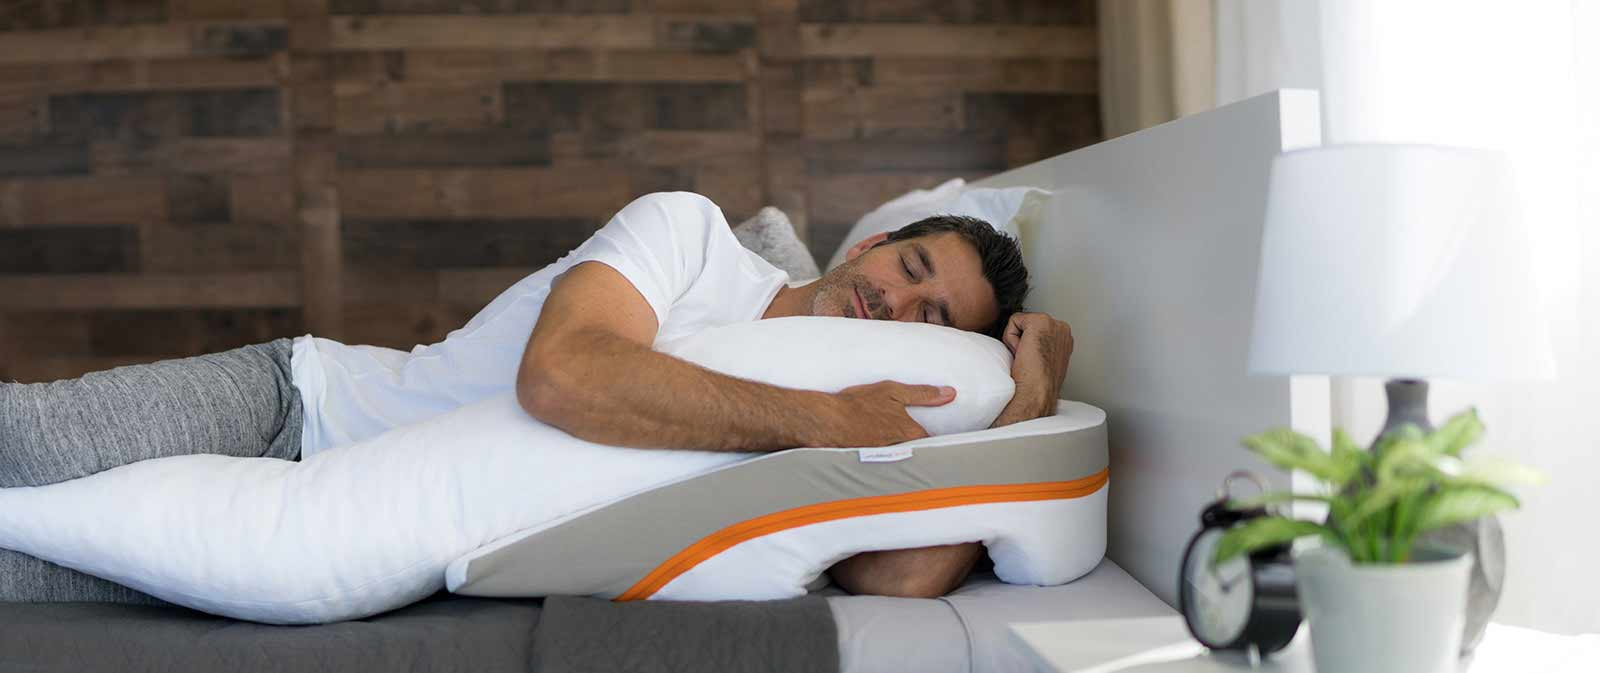 Acid Reflux Pillow Reviews and Buying Guide by www.snoremagazine.com